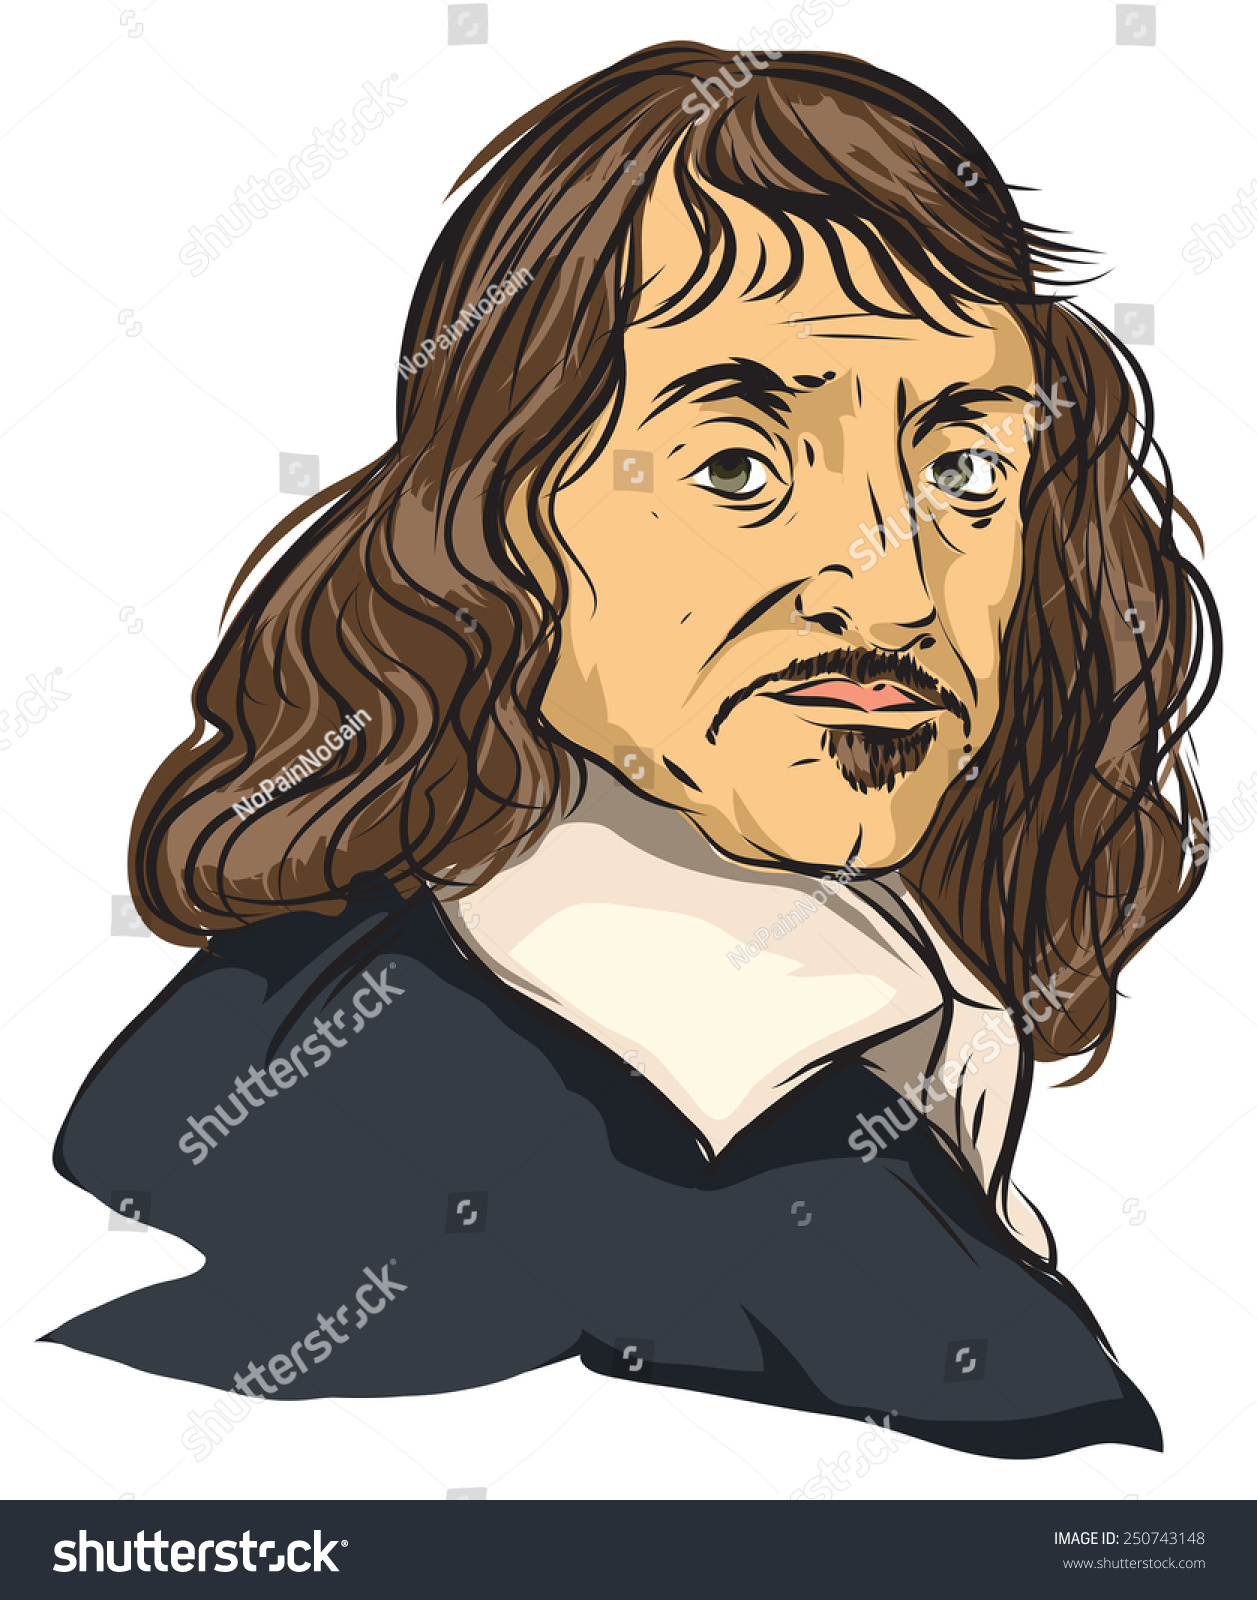 descartes free will The free will in meditations on first philosophy by descartes 3767 words | 16 pages the free will in meditations on first philosophy by descartes i in meditations on first philosophy, descartes takes the reader through a methodological exercise in philosophical enquiry.